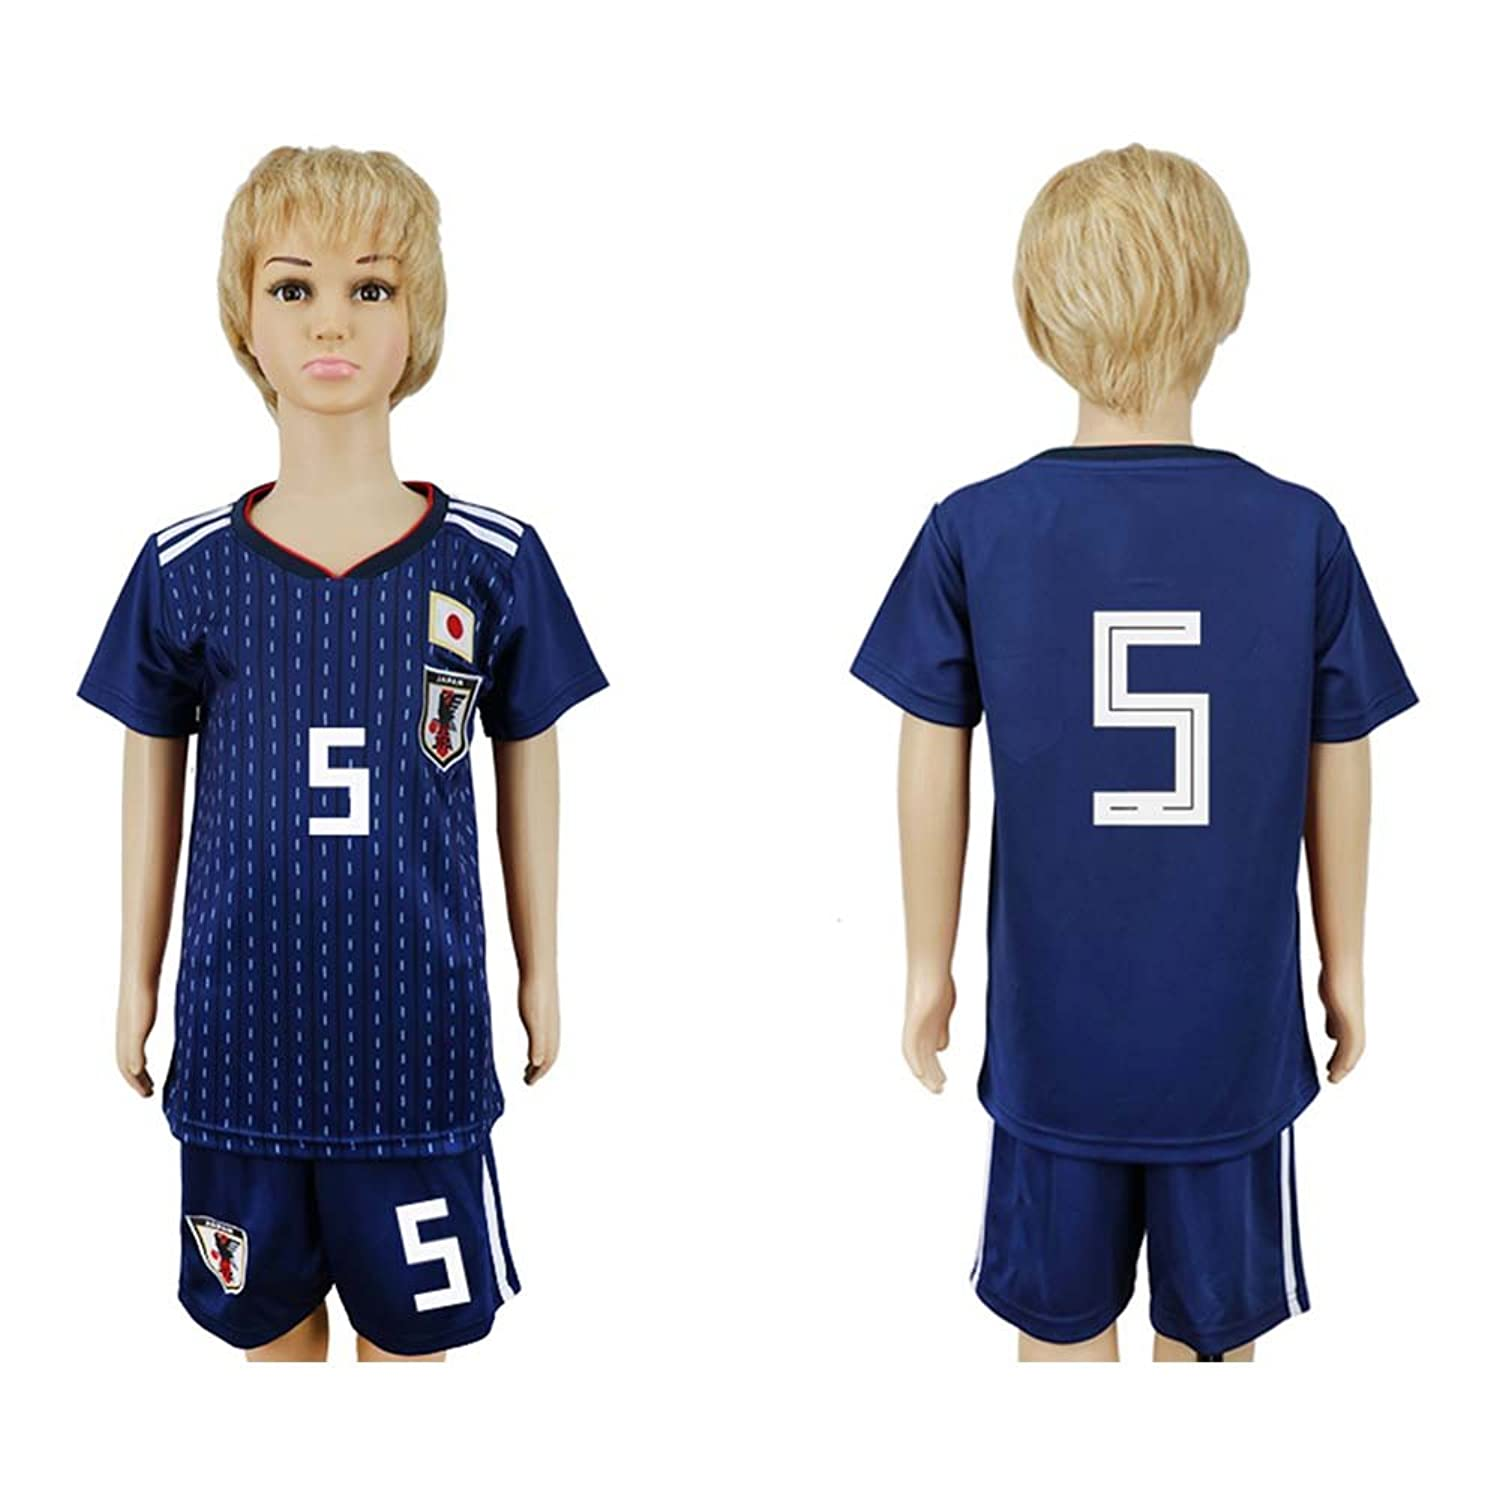 Puizozi SHIRT ボーイズ B07D3LJ3MH 22# (7 to 8 Years Old)